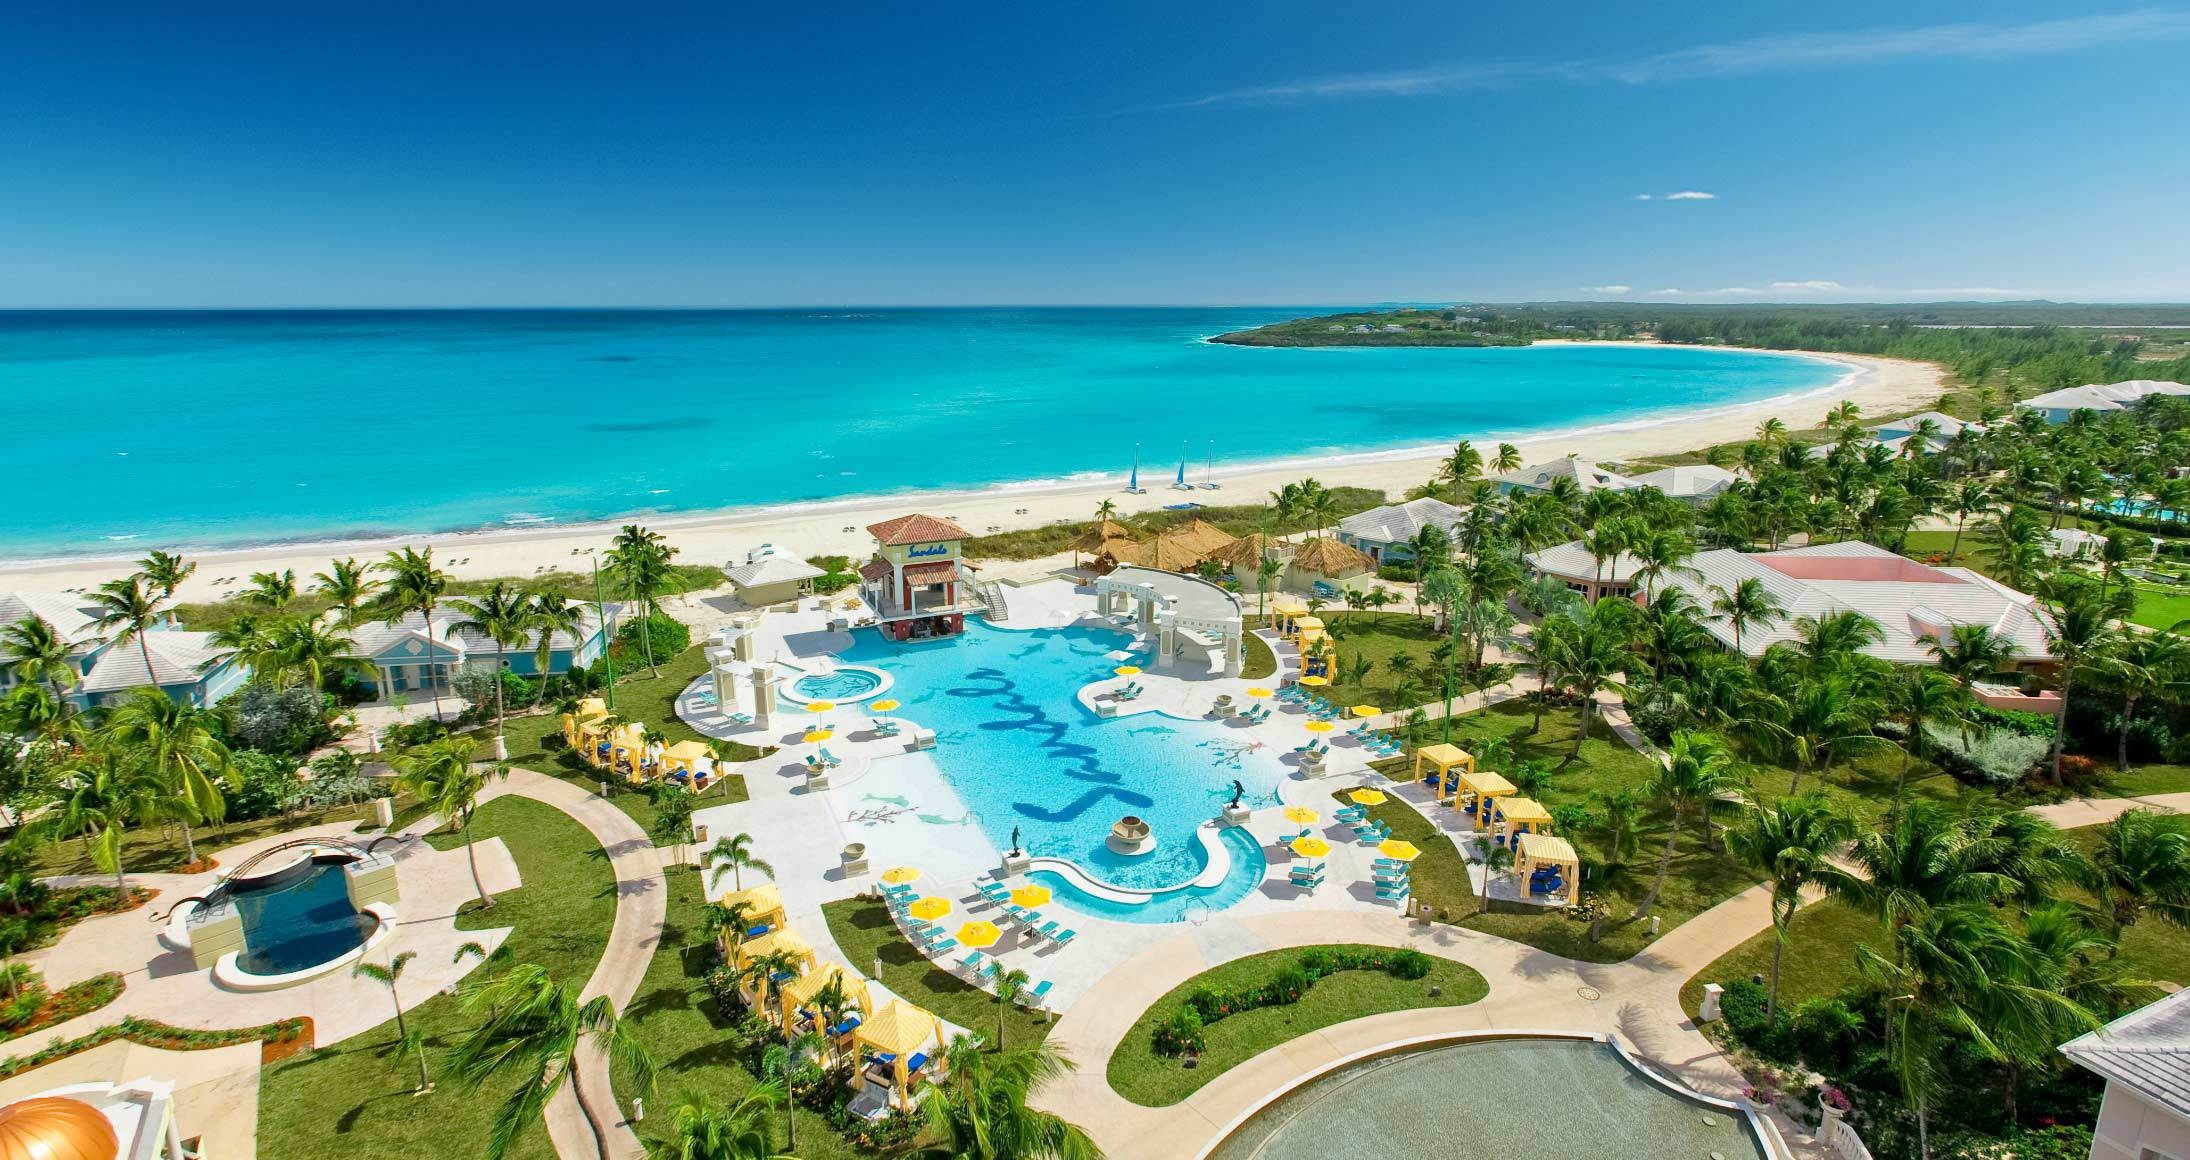 Honeymoon Destinations for Newlyweds in Bahamas